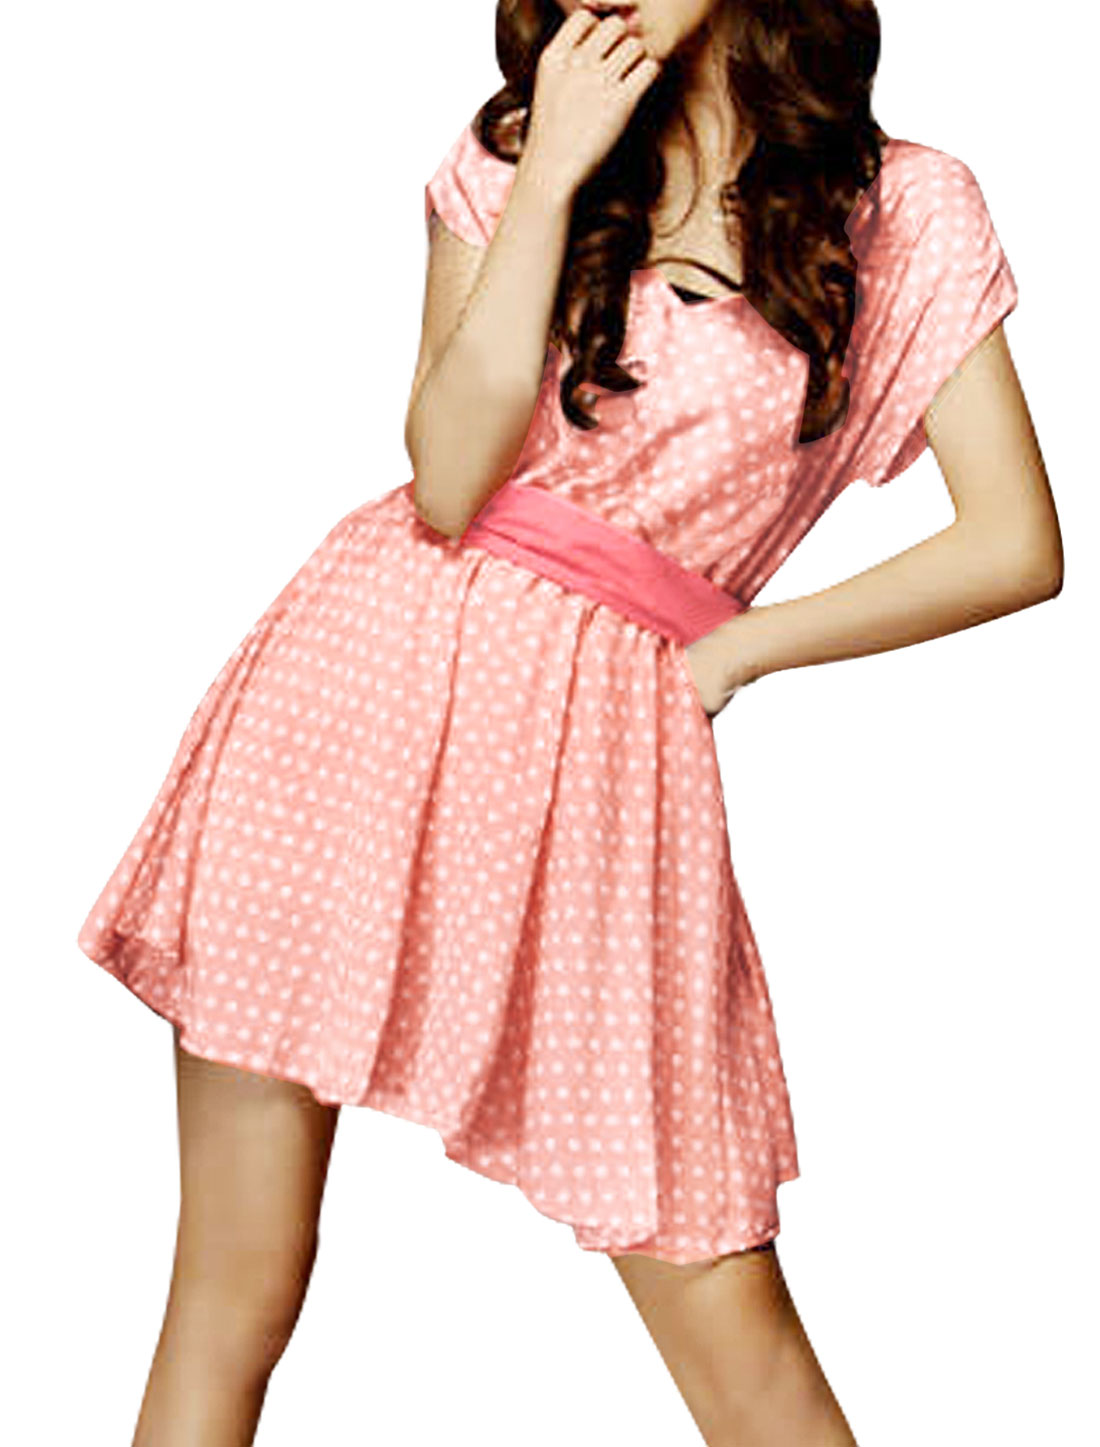 White Dots Printed Pink Sash Belted Mini Dress XL for Lady